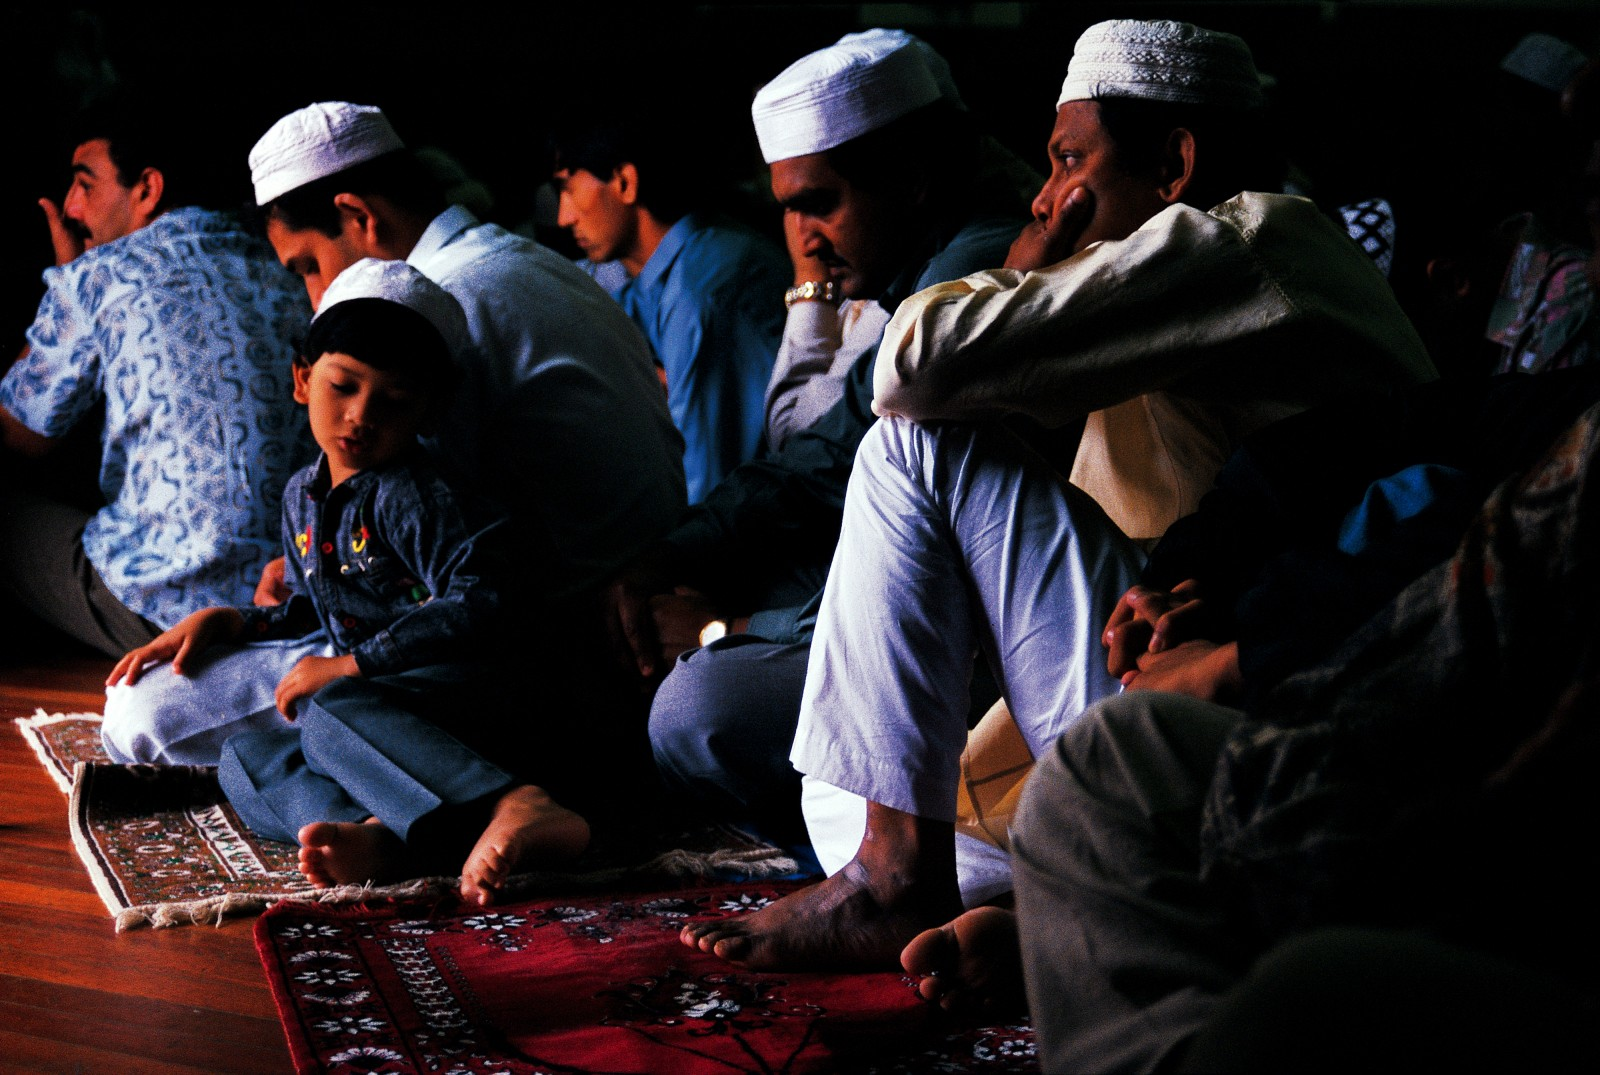 The majority of New Zealand's Muslims live in Auckland, though they have come from places as diverse as Fiji, Nigeria and Egypt. They find comfort in the brotherhood-its very idea deeply rooted in the Ouran. Meetings are often held in community halls hired for the occasion, as numbers frequently exceed the capacity of Auckland's three relatively small mosques. During the feast of Eid-ul-Fitr, observed on the day following the last day of Ramadan, members of the community listen to an address by the Imam.